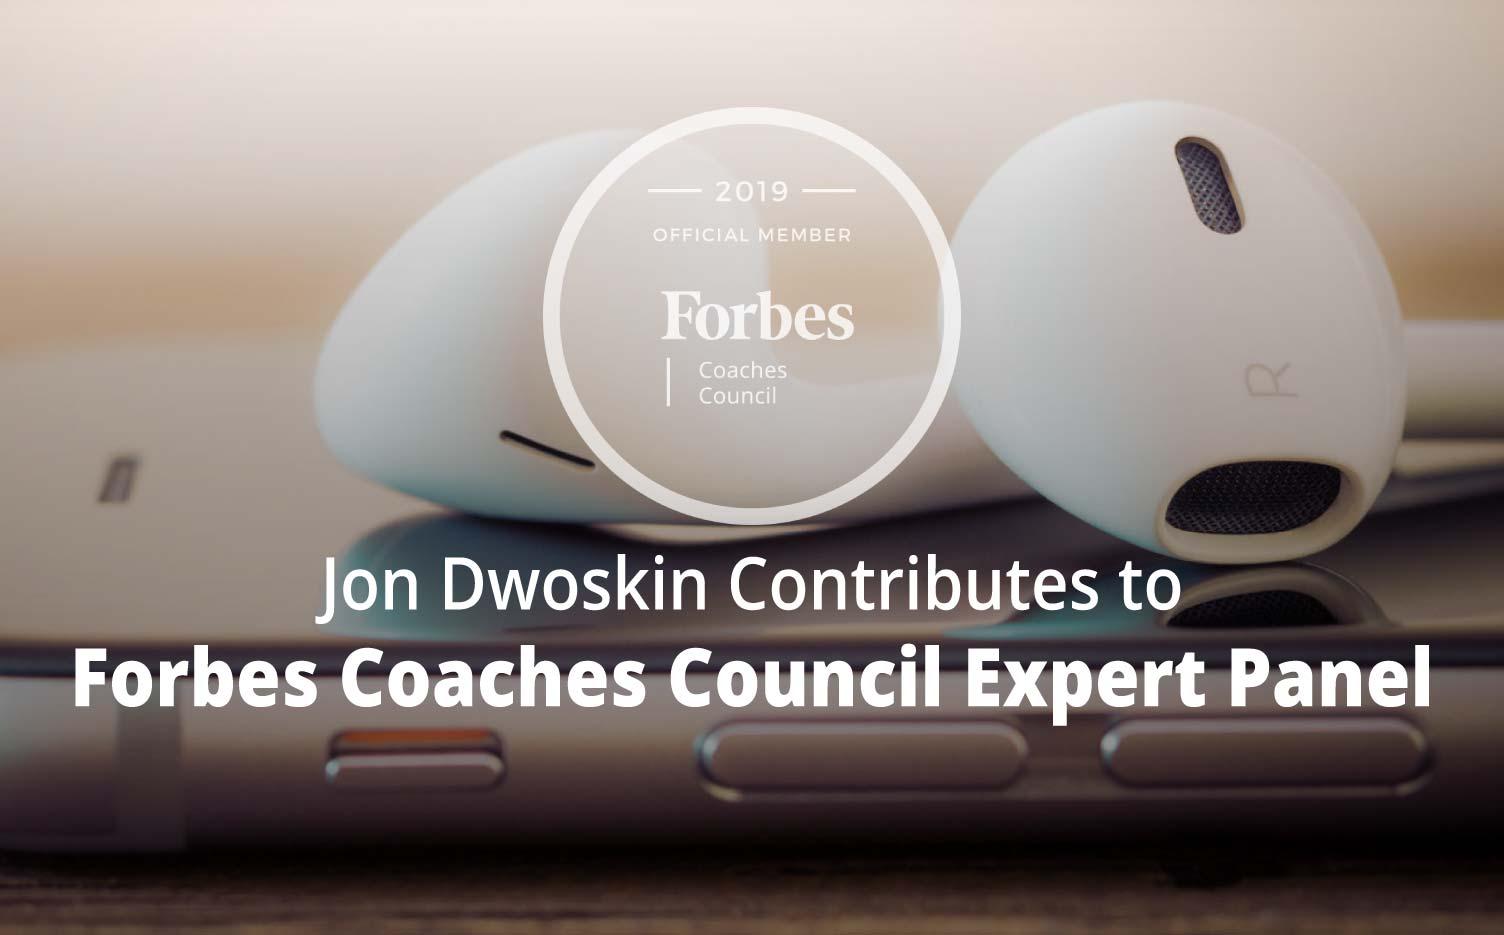 Jon Dwoskin Contributes to Forbes Coaches Council Expert Panel: 15 Essential Podcasts For The Busy Entrepreneur